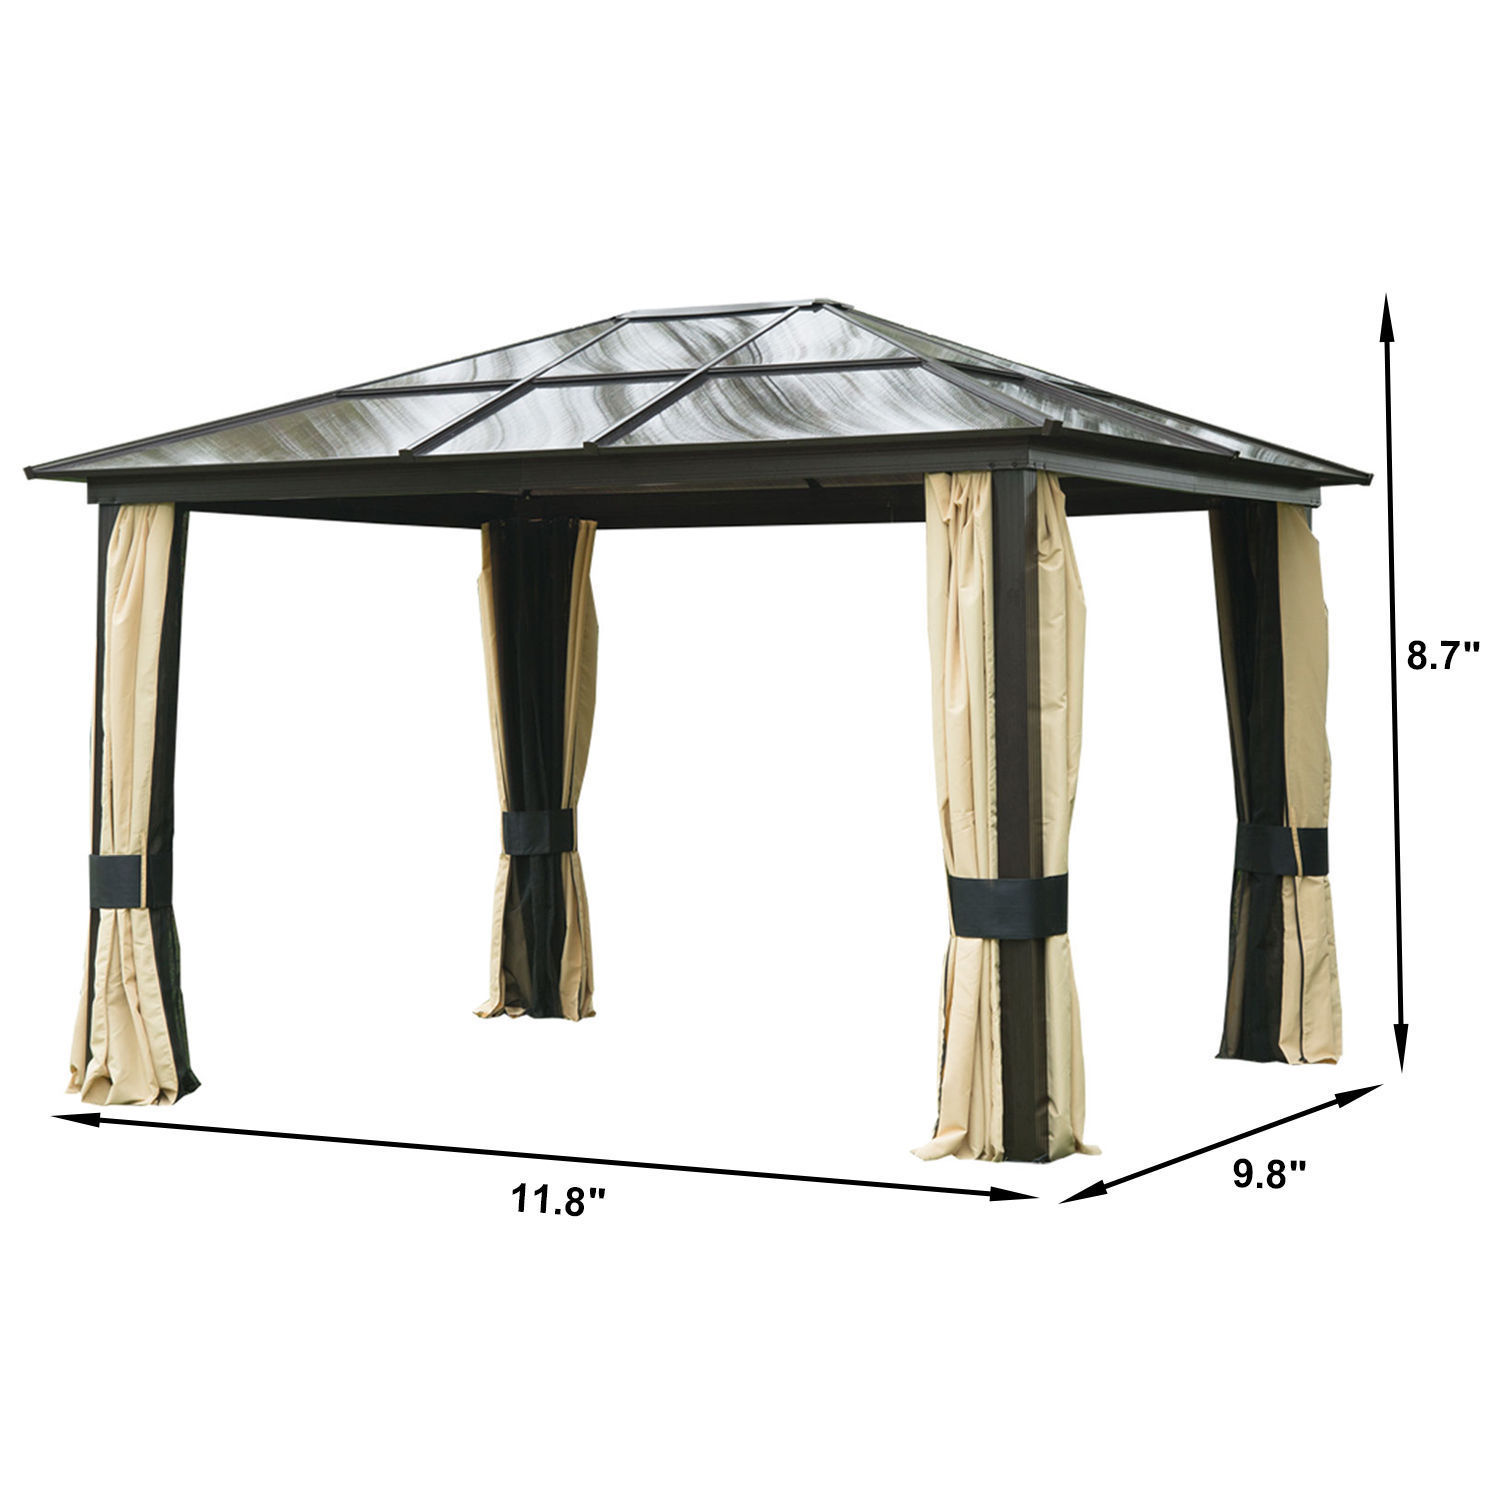 12 X 10 Outdoor Gazebo Patio Canopy Hardtop With Mesh Curtains 3